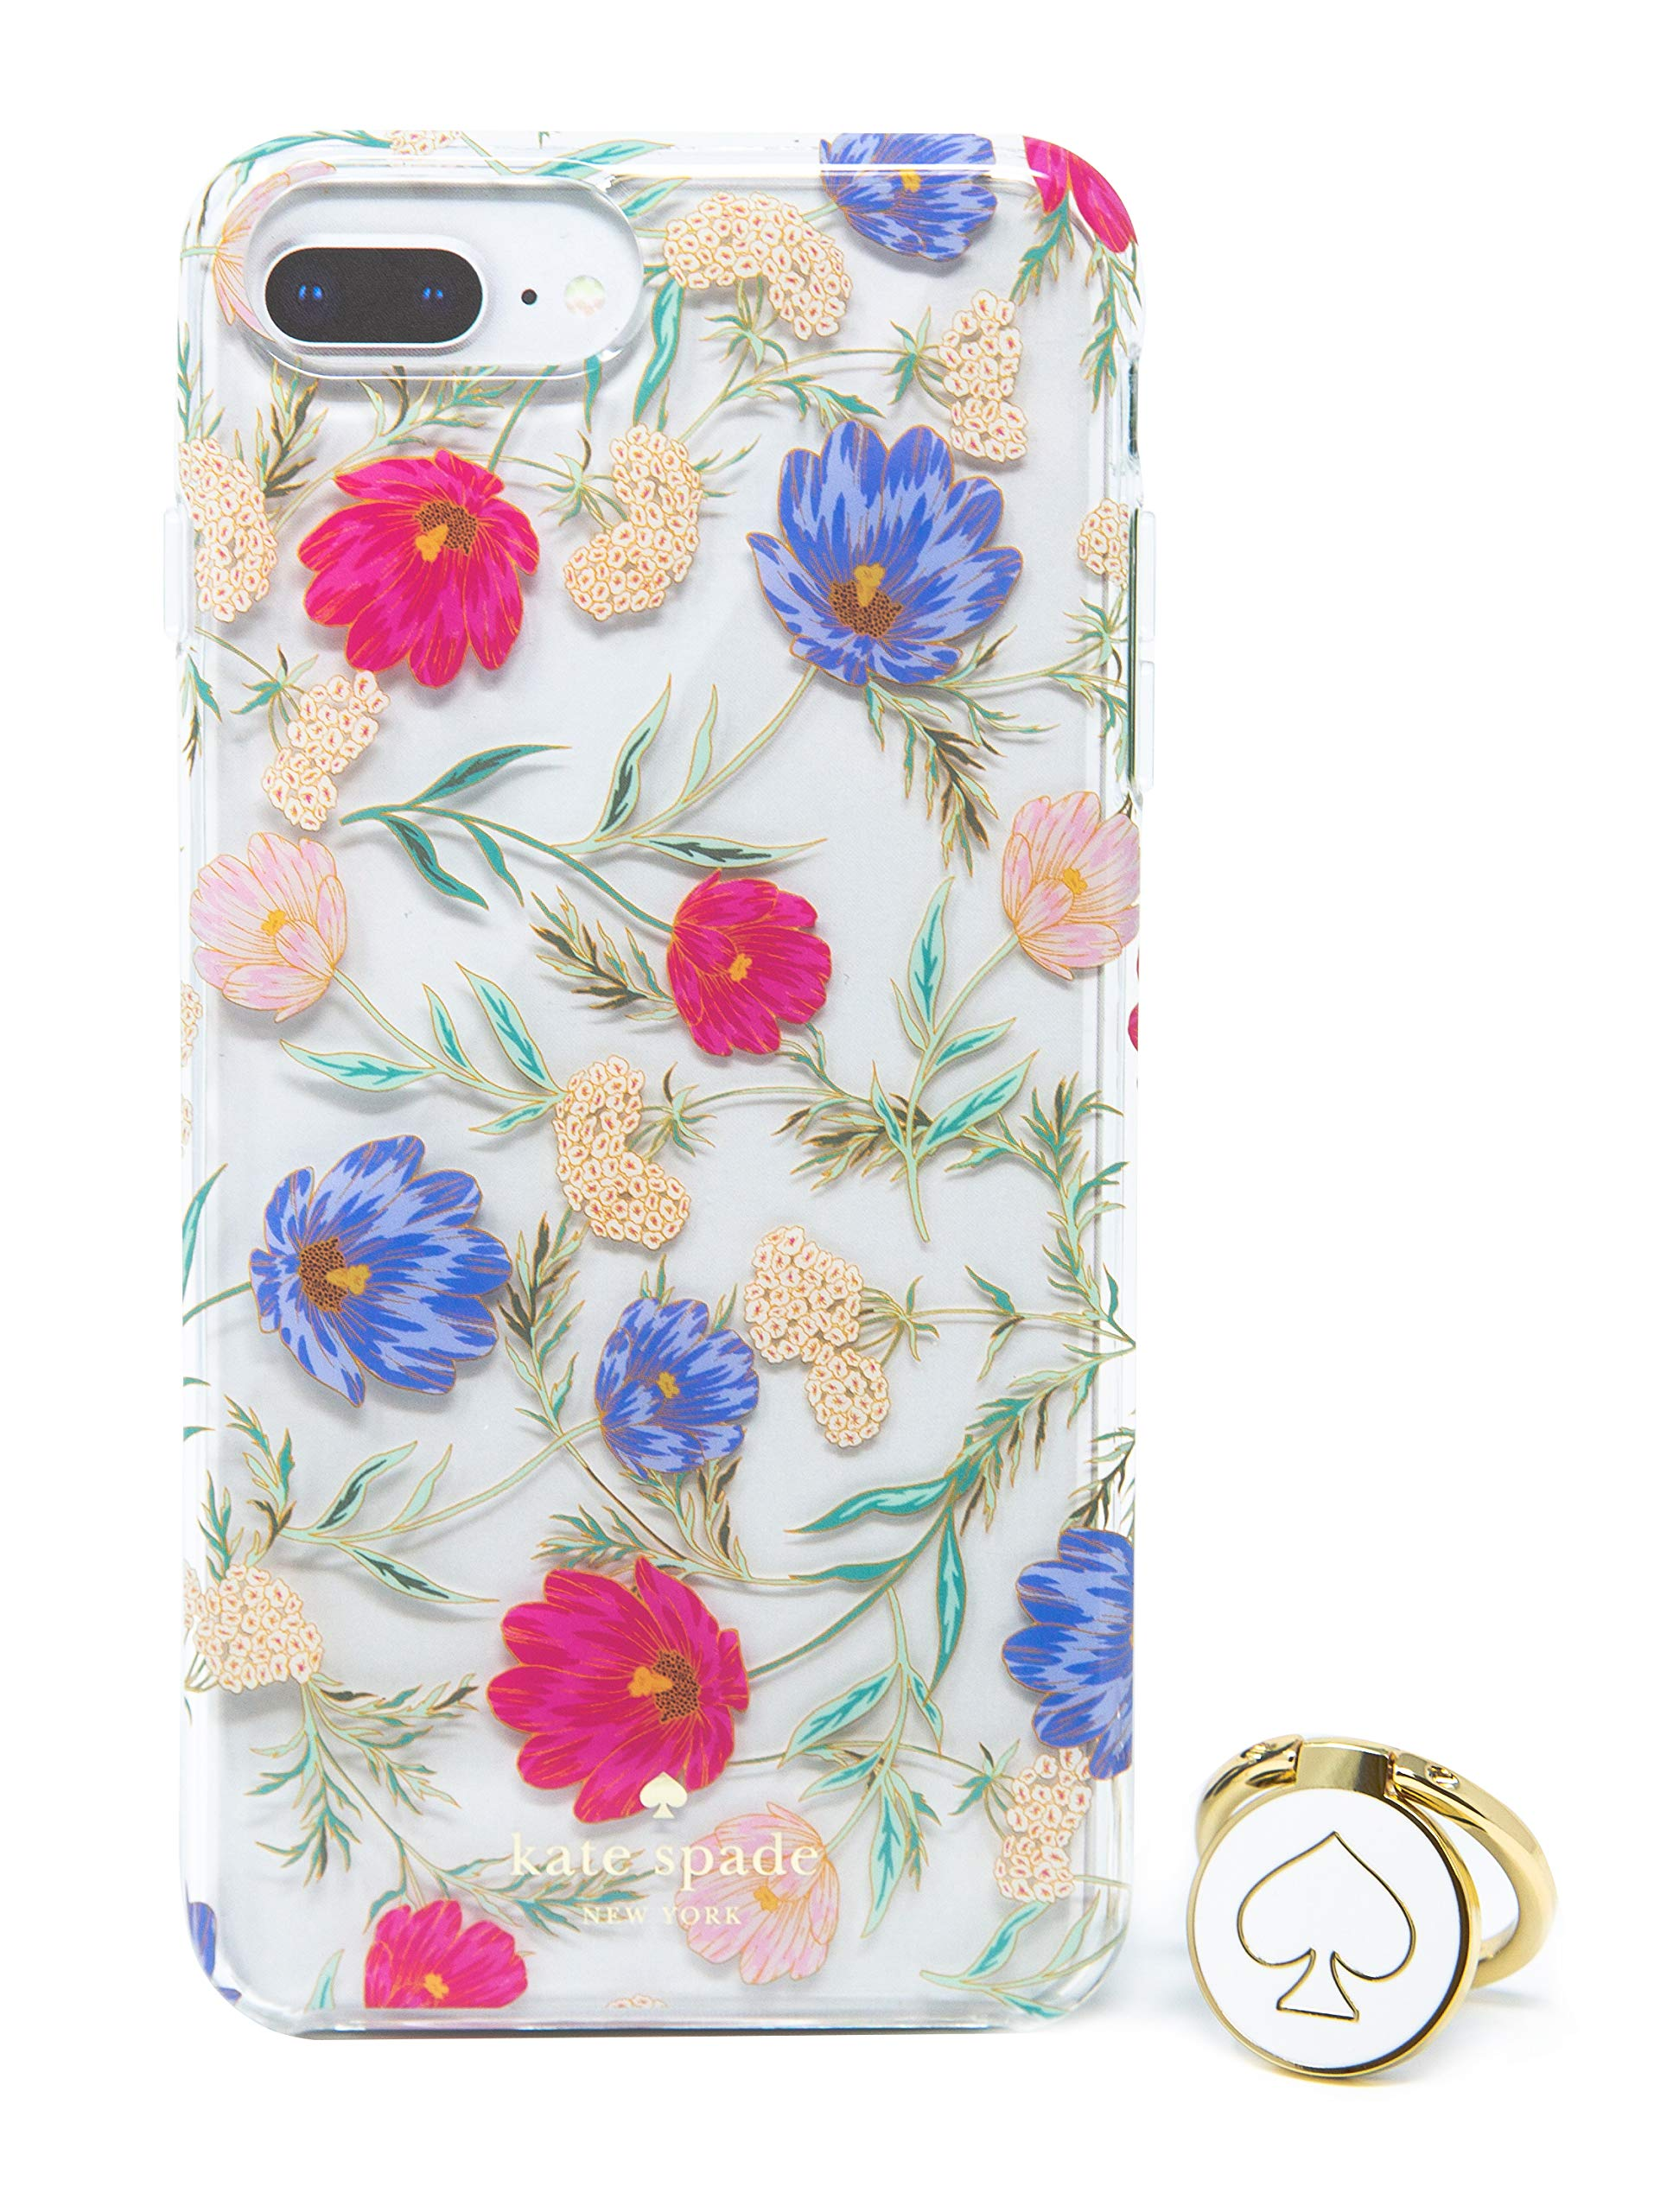 Kate Spade Case & Ring Stand for iPhone 8 Plus/7 Plus/6s Plus - Clear Floral